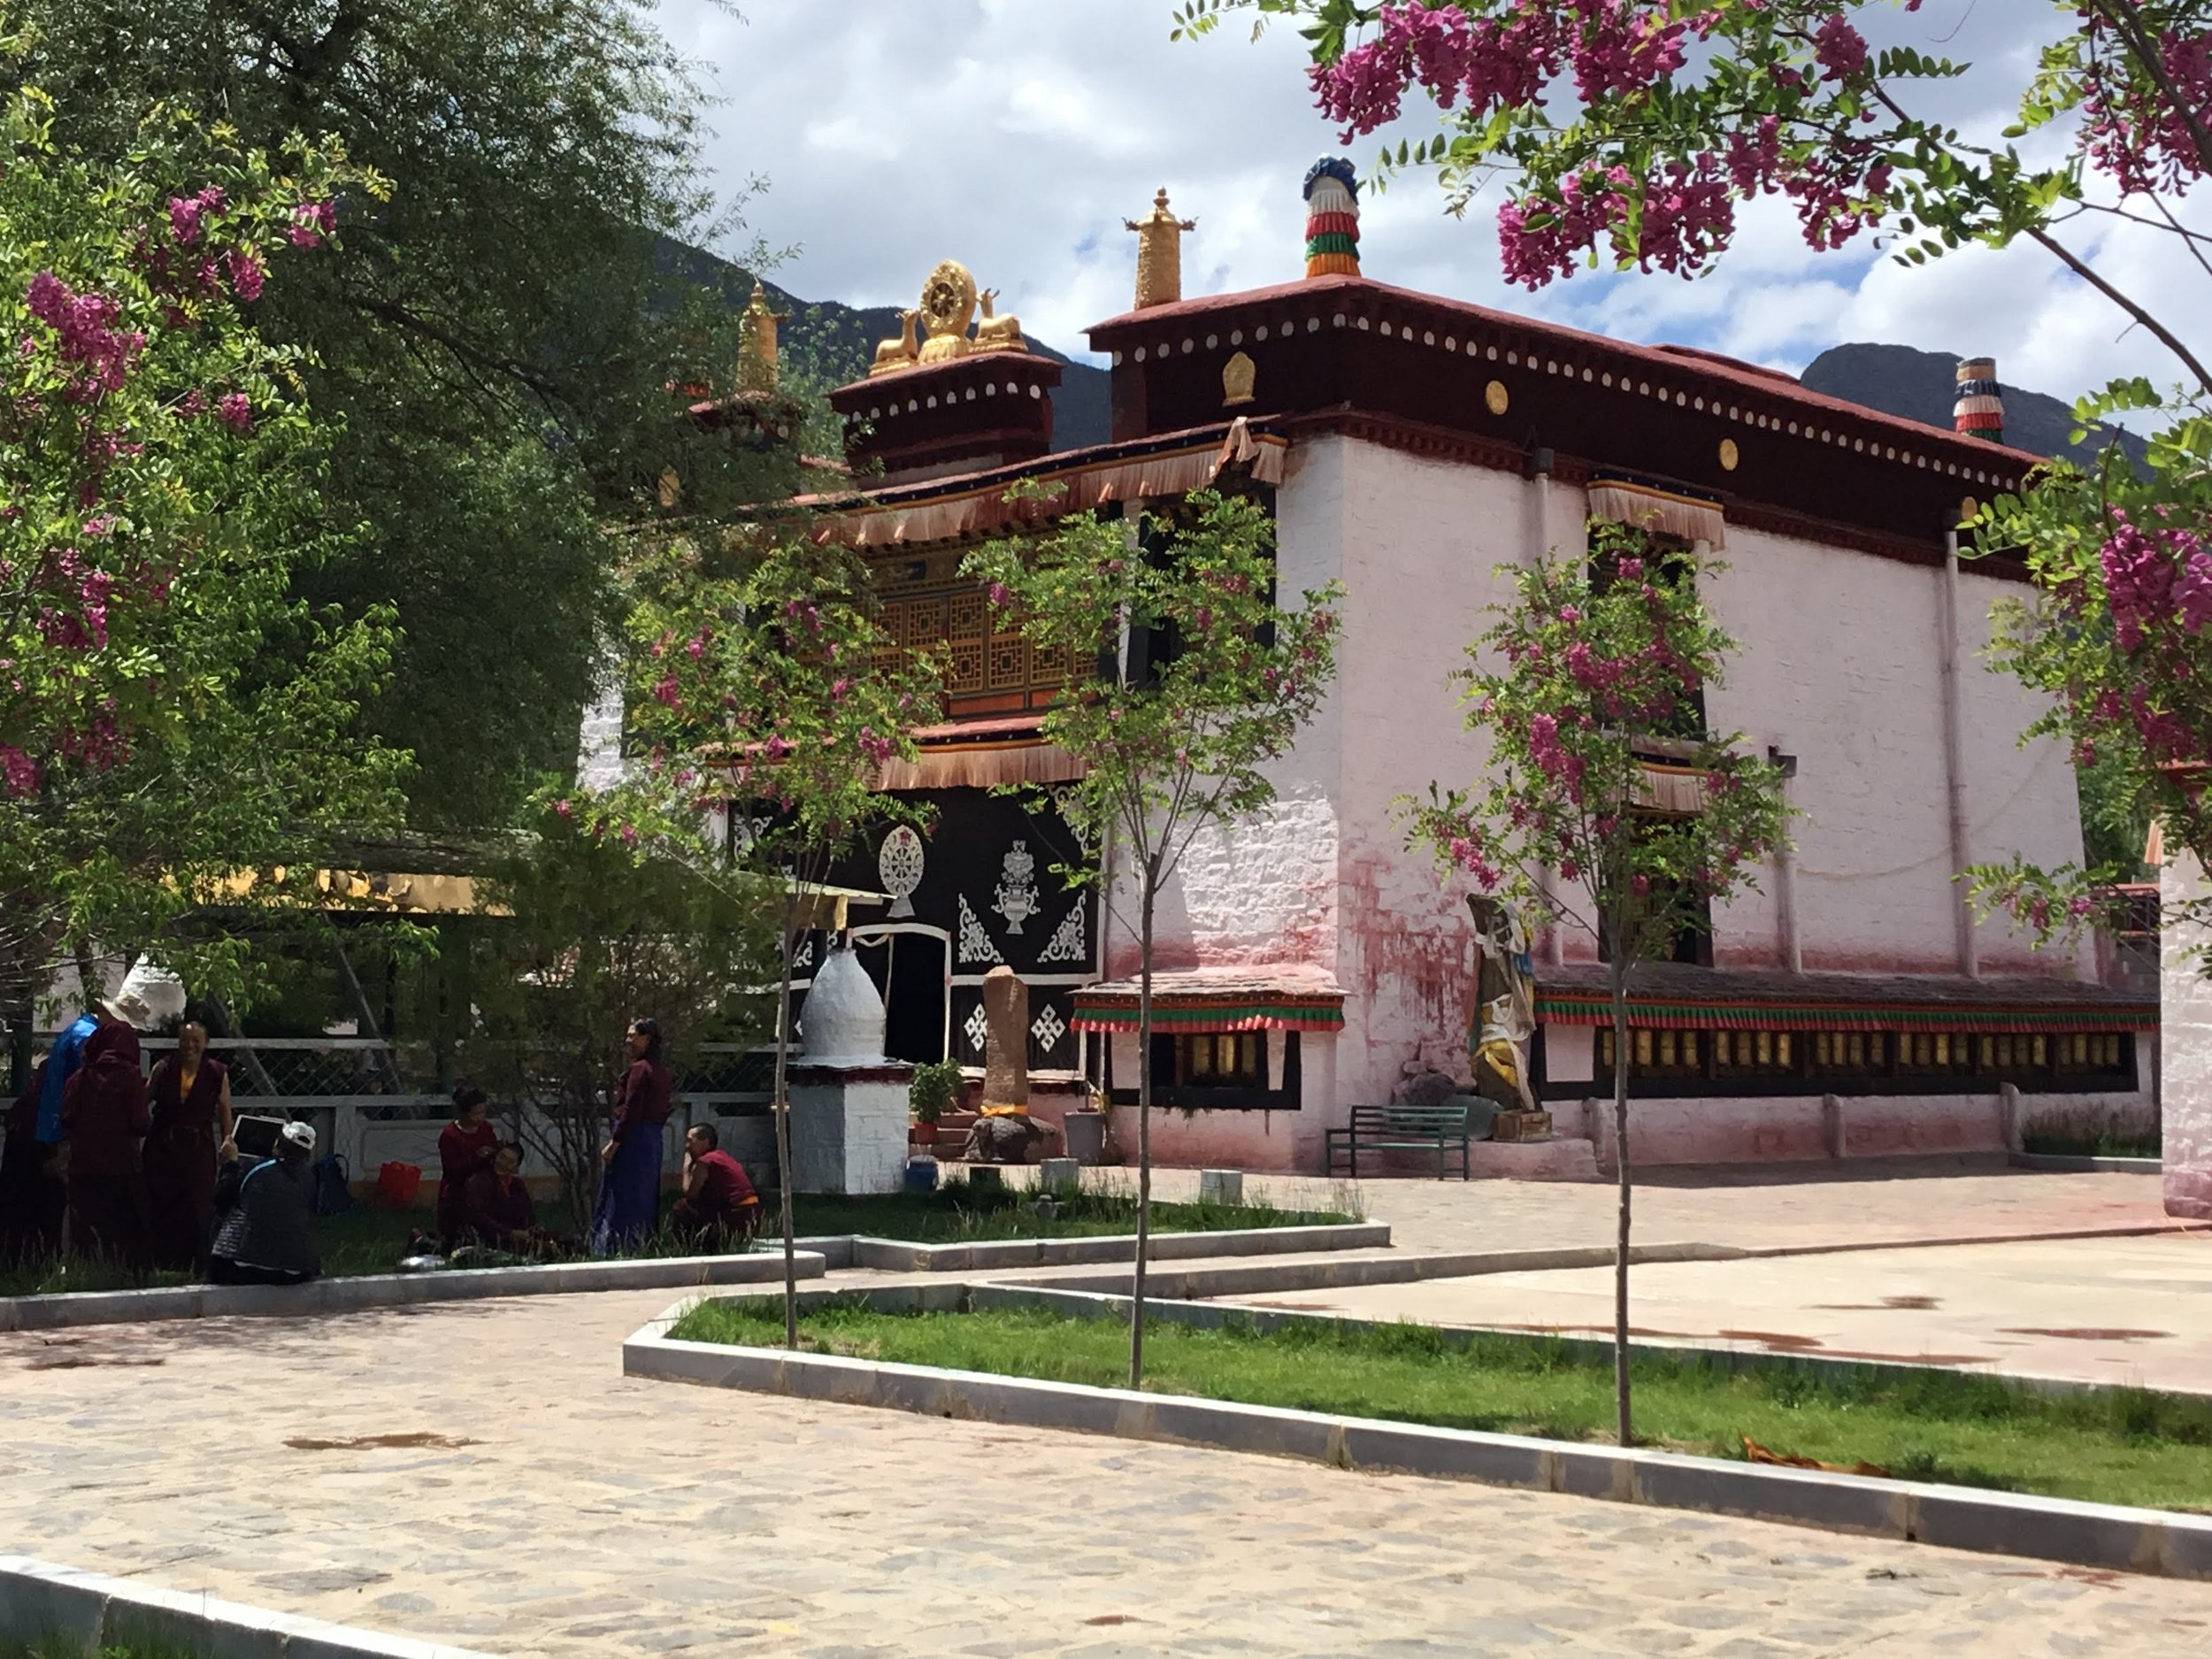 JUNE 29-JUNE30-JULY 1:Tsogyal Latso - After an early breakfast, on the way to Tsogyal Latso (about 30 minutes), we will stop at the amazing Zurkhardo stupas built by Shantirakshita to commemorate the place King Trisong Detsen first welcomed Padmasambhava to Tibet.Then we will arrive at Tsogyal Latso that is cradled in a valley that legend honors as the abode of Vajra Varahi and Saraswati. Tsogyal Latso is well known for Tsogyal's life-force lake or latso that spontaneously arose at the moment of her birth.This is the most heartwarming part of our pilgrimage. Lama Dechen Yeshe Wangmo and the Jnanasukha Foundation sangha care for this sacred place of the enlightened feminine, supporting the nuns and the complex since 2009. There are sixteen nuns in residence and it is a joy to meet them and spend time together. This year, Lama Wangmo is again bringing a healthcare team to help the nuns.Our time at Tsogyal Latso over these three days will be relaxed as we have the opportunity to do personal practice in t e new temple, enjoy the new murals, take walks and explore the sacred places such as Tsogyal' breast milk springs, her still-thriving life-force tree, birthplace stupa, and more. To learn more about Tsogyal Latso, please visit this website.Each evening, we will drive back to the Samye Monastery Hotel bringing out total stay there to six nights.